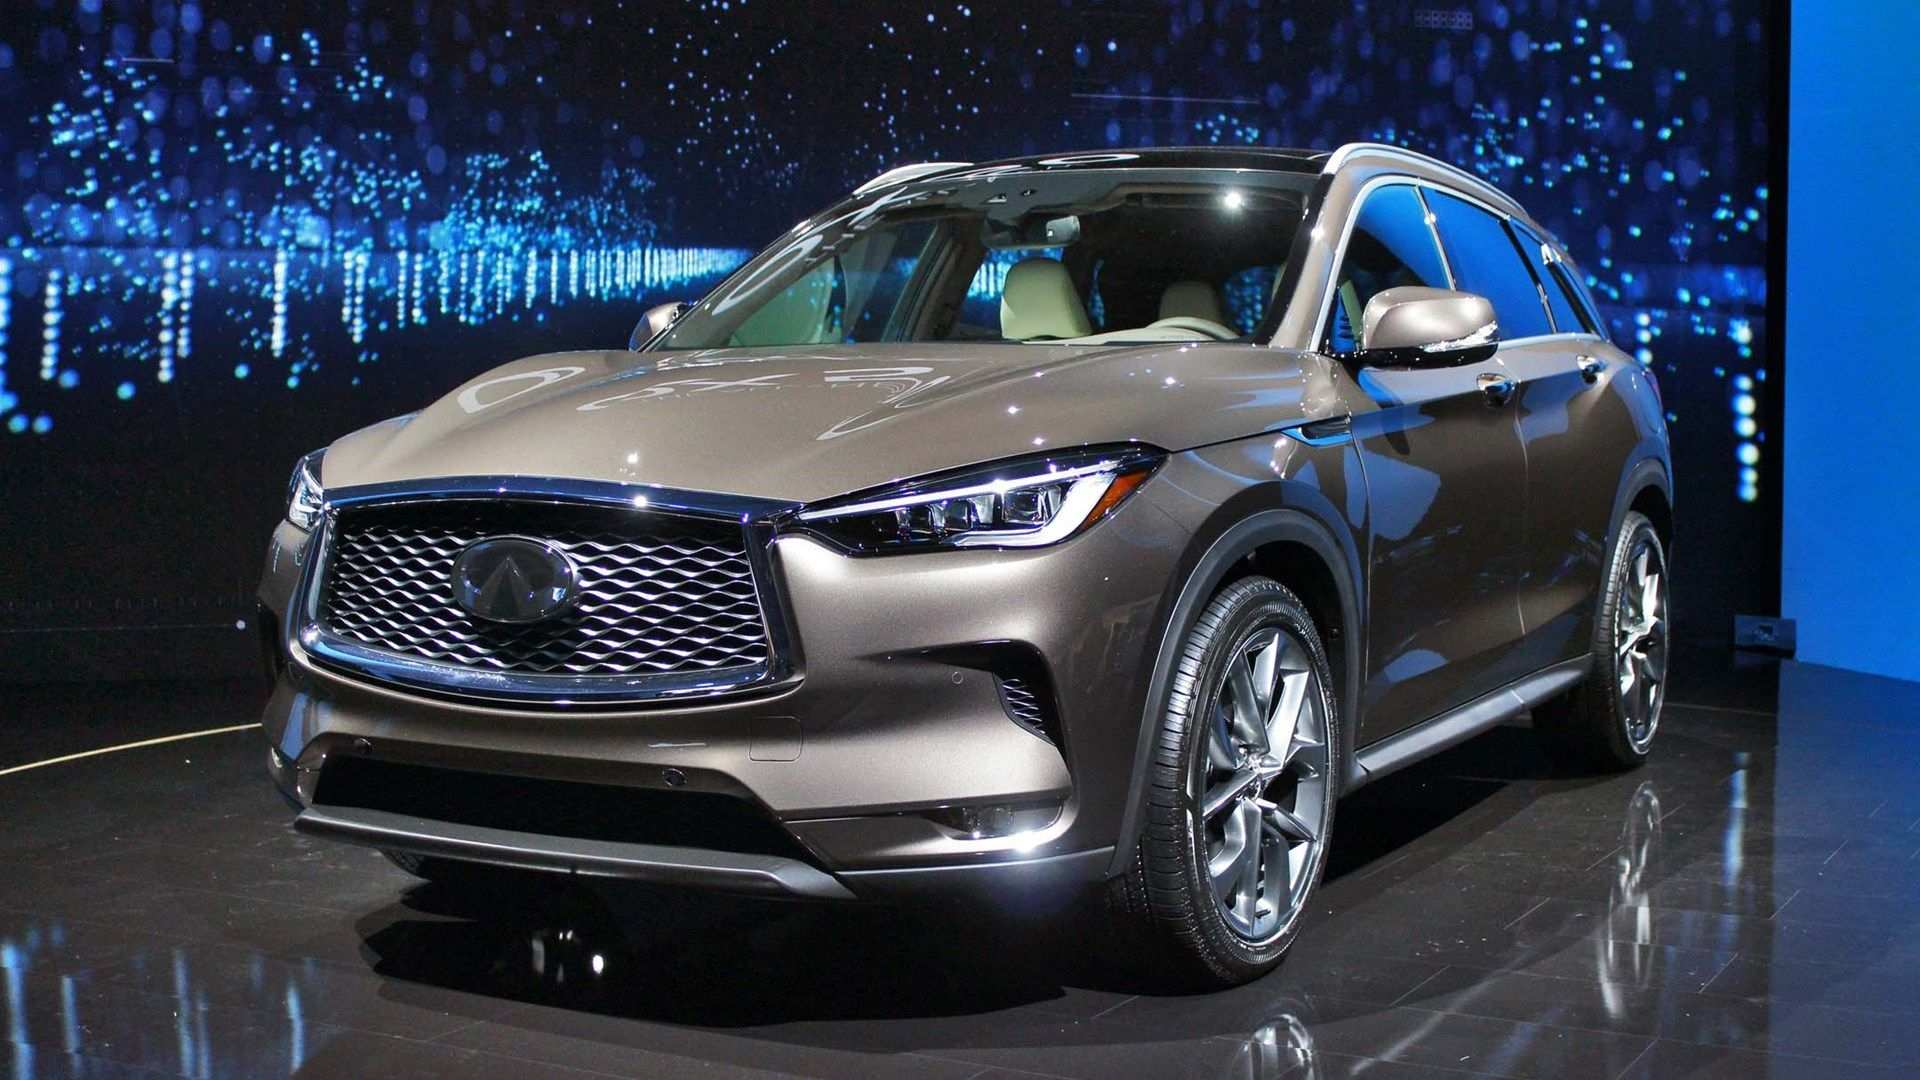 12 Gallery of 2019 Infiniti Qx50 Engine Specs Ratings for 2019 Infiniti Qx50 Engine Specs